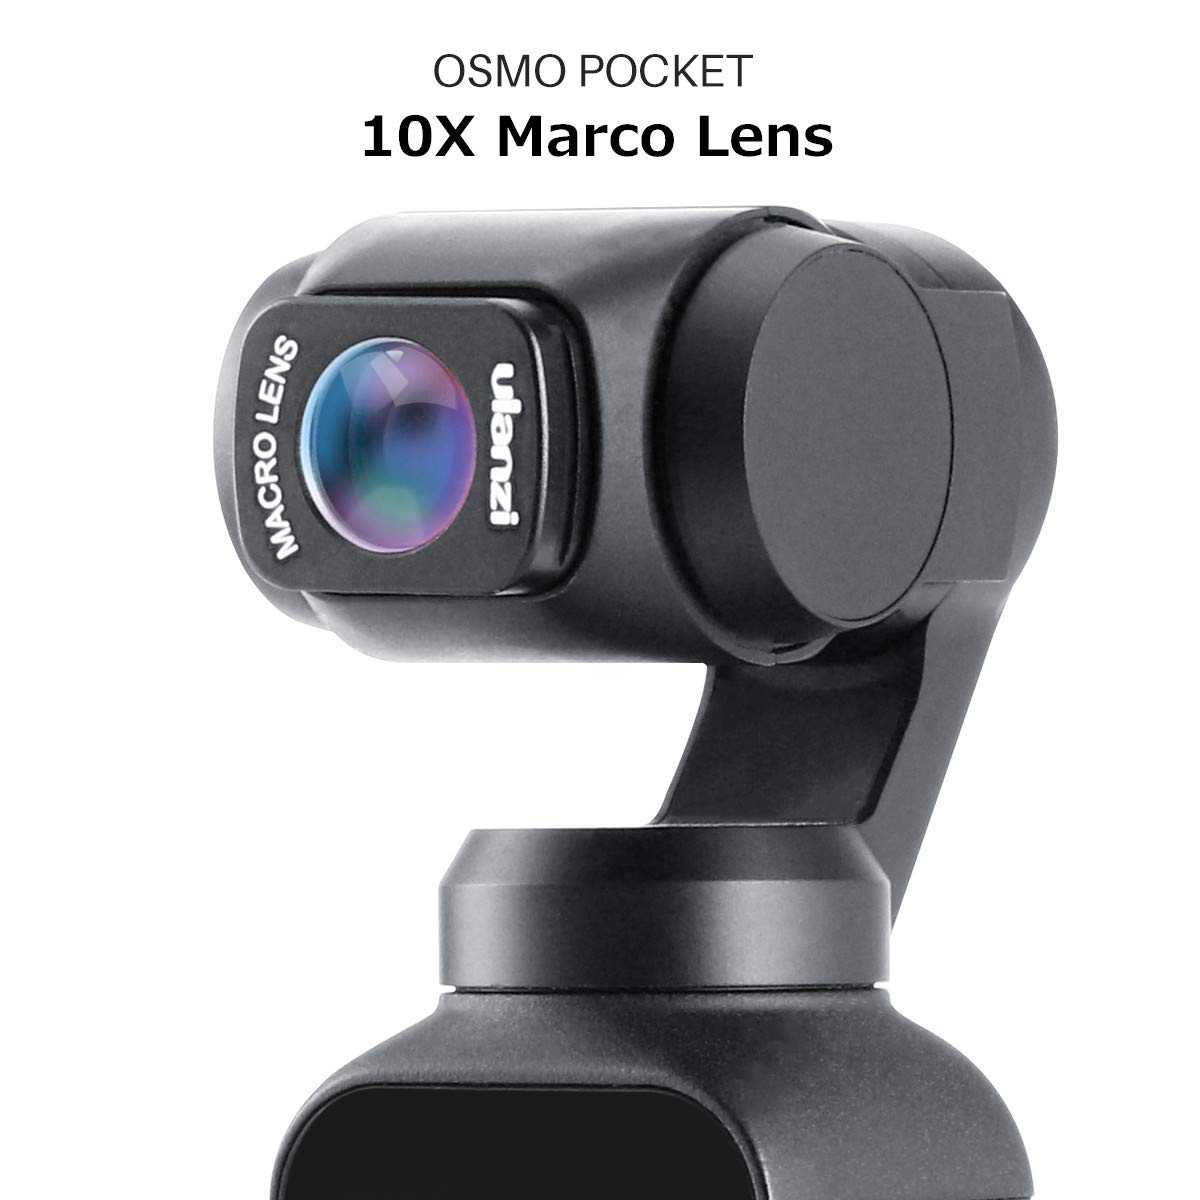 ULANZI OP-6 OSMO Pocket Super Marco Lens for DJI OSMO Pocket Magnetic Structure Camera Handheld Gimbal Stabilizer Accessories 10X Marco Camera Lens